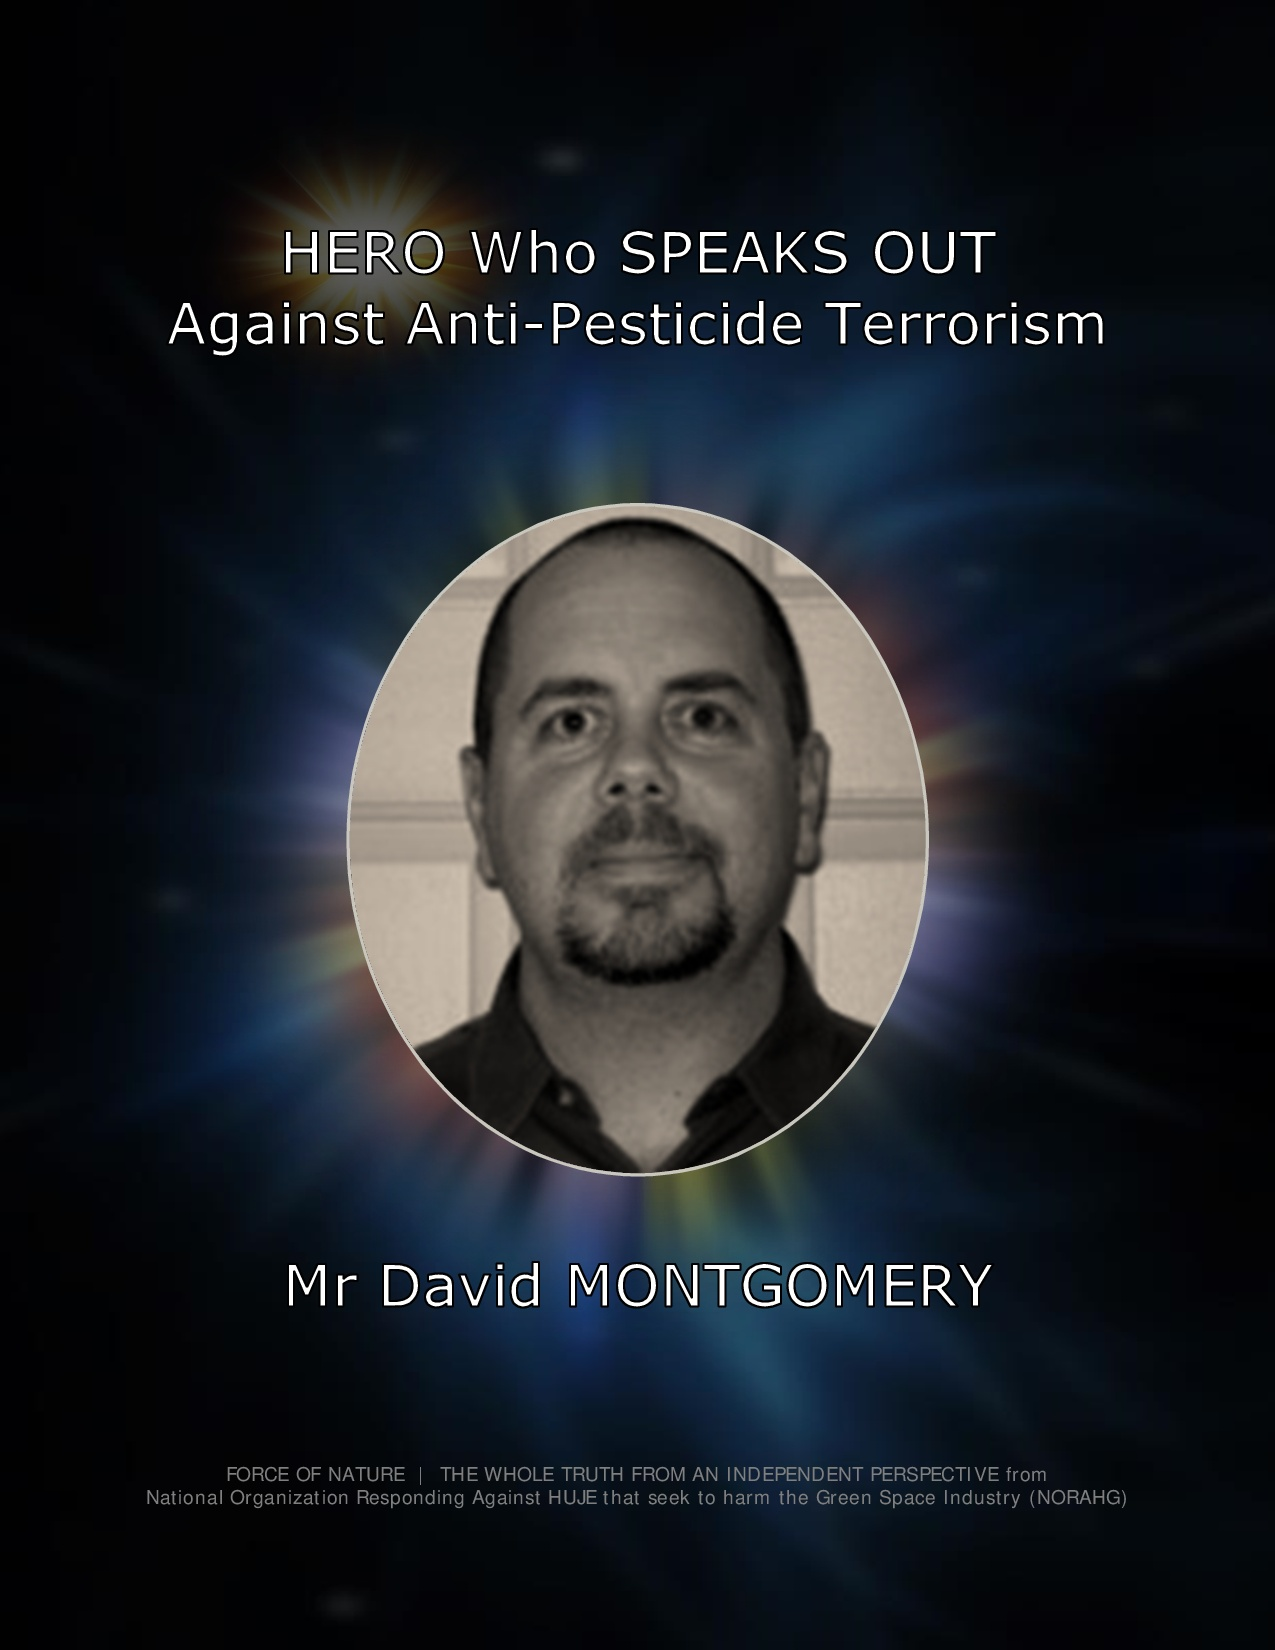 MONTGOMERY, Mr David